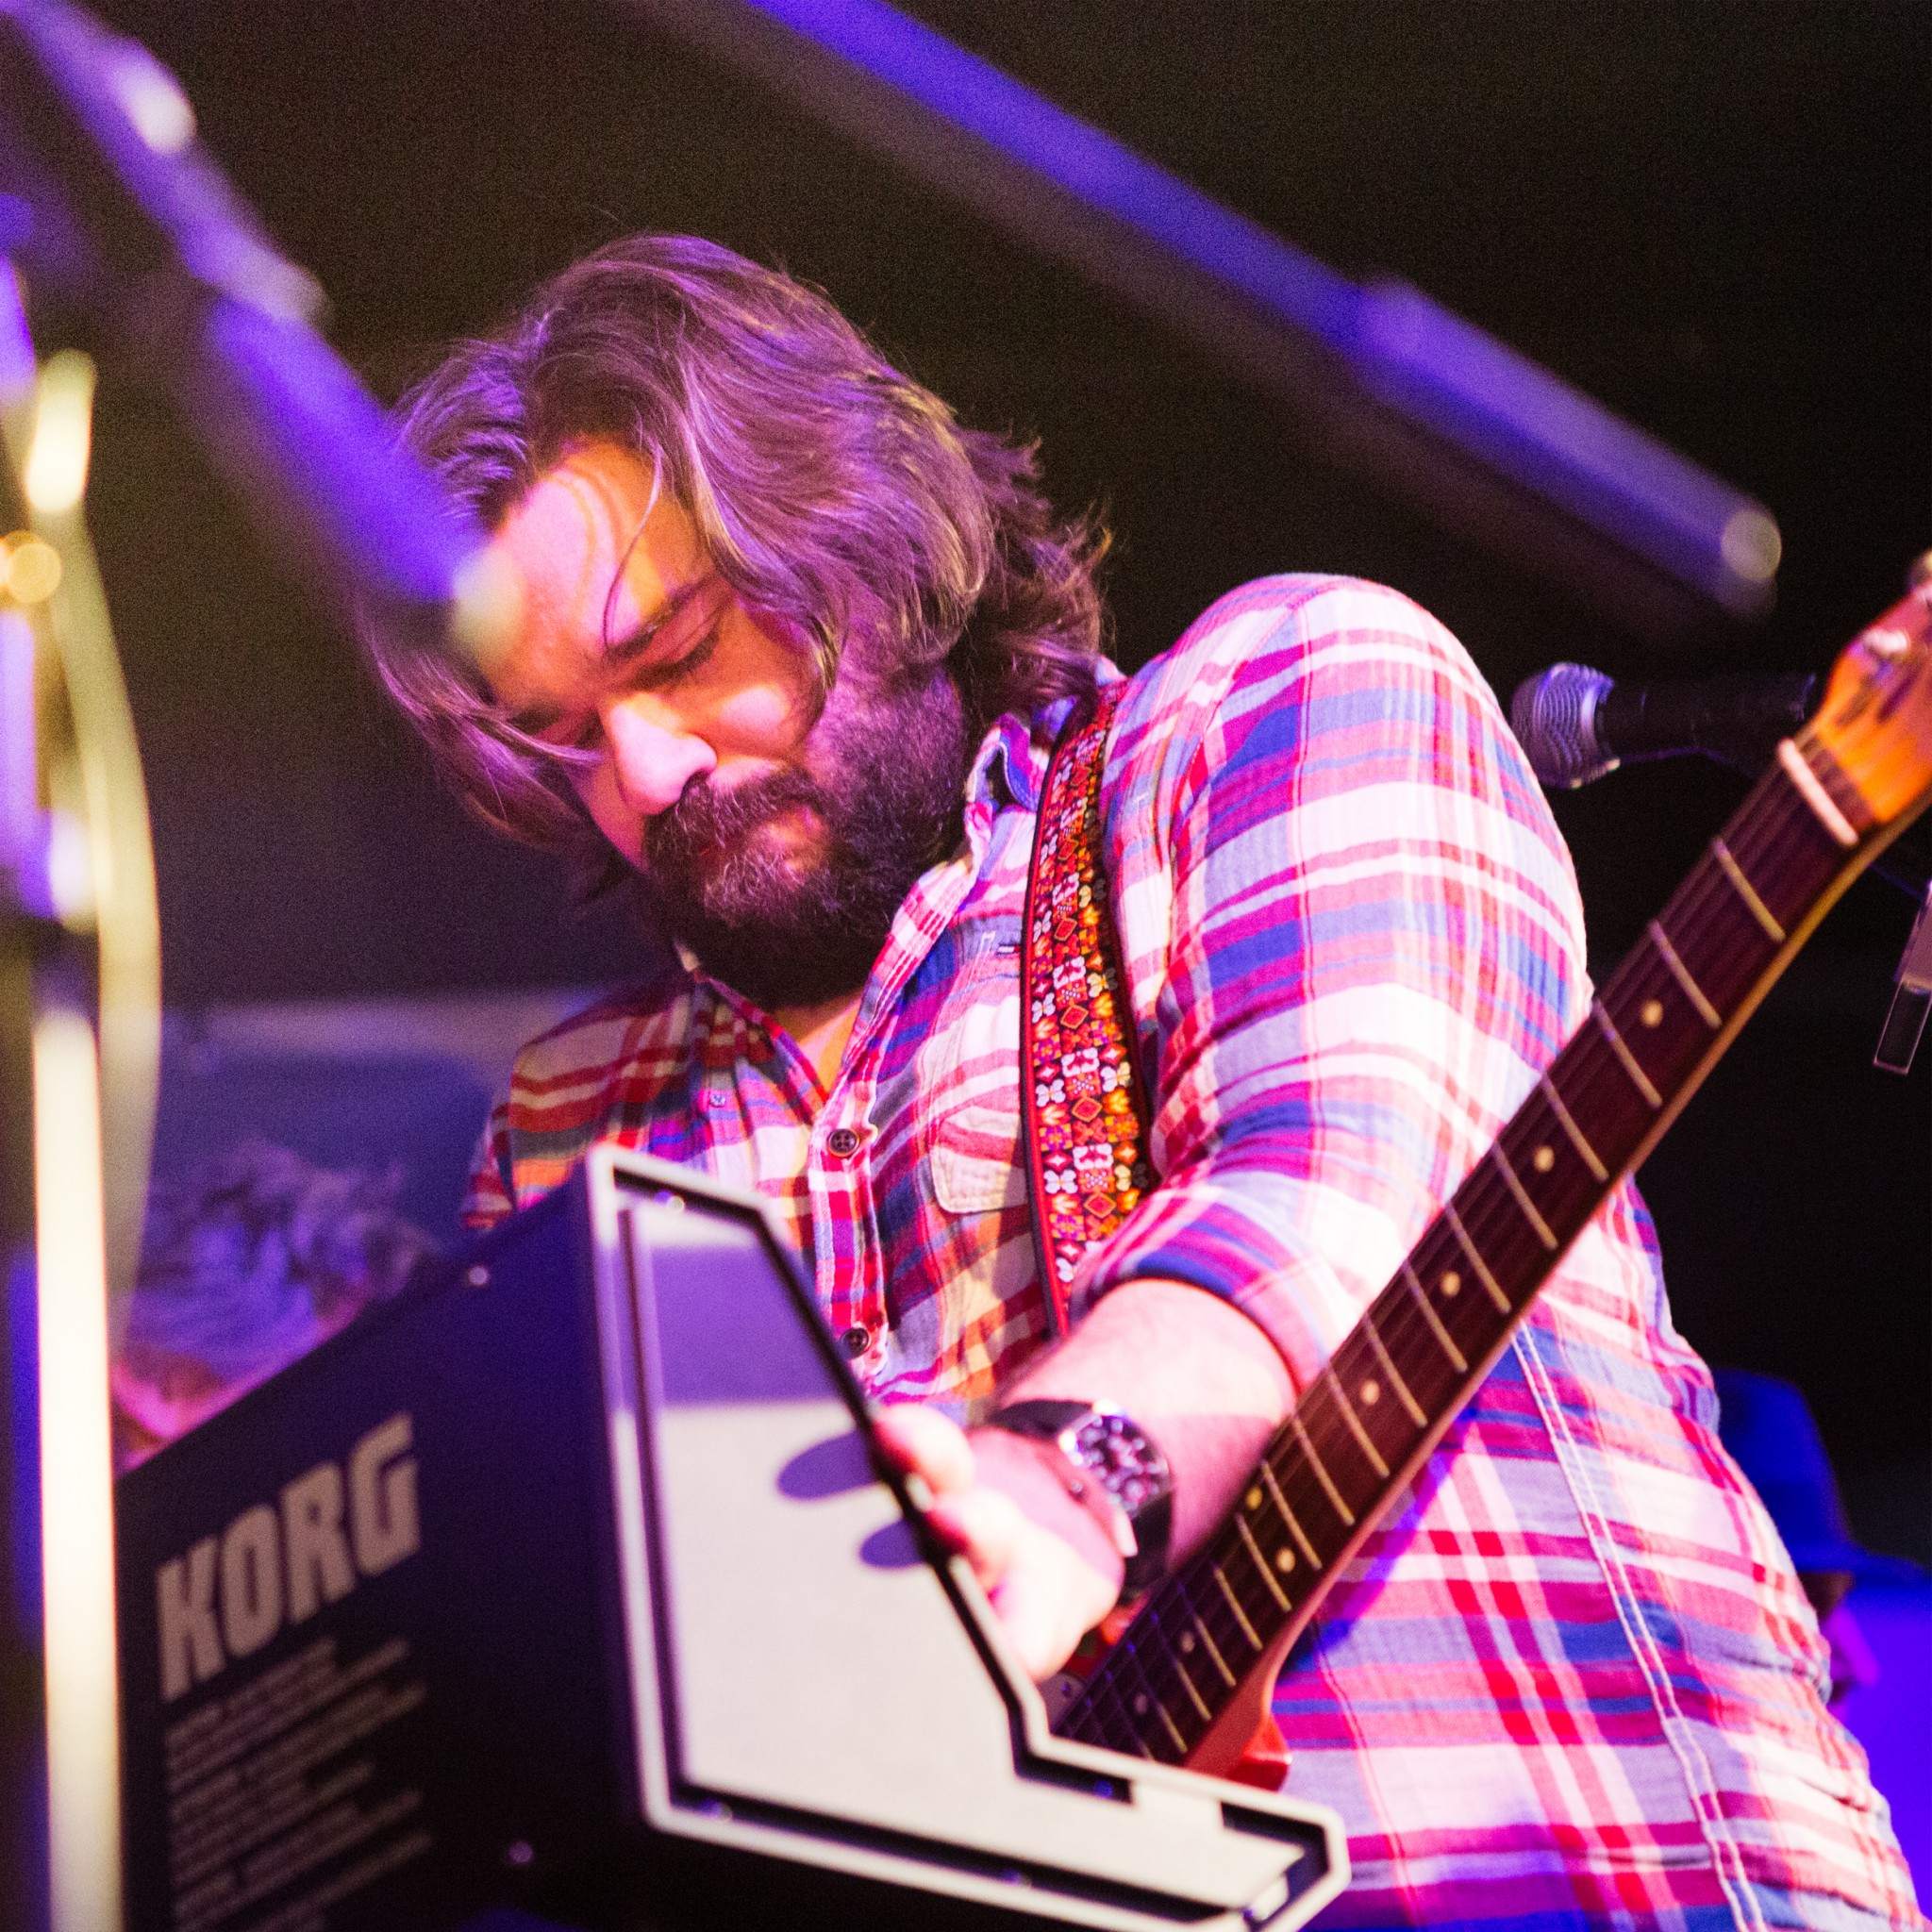 Matt Berry playing live with his band The Maypoles